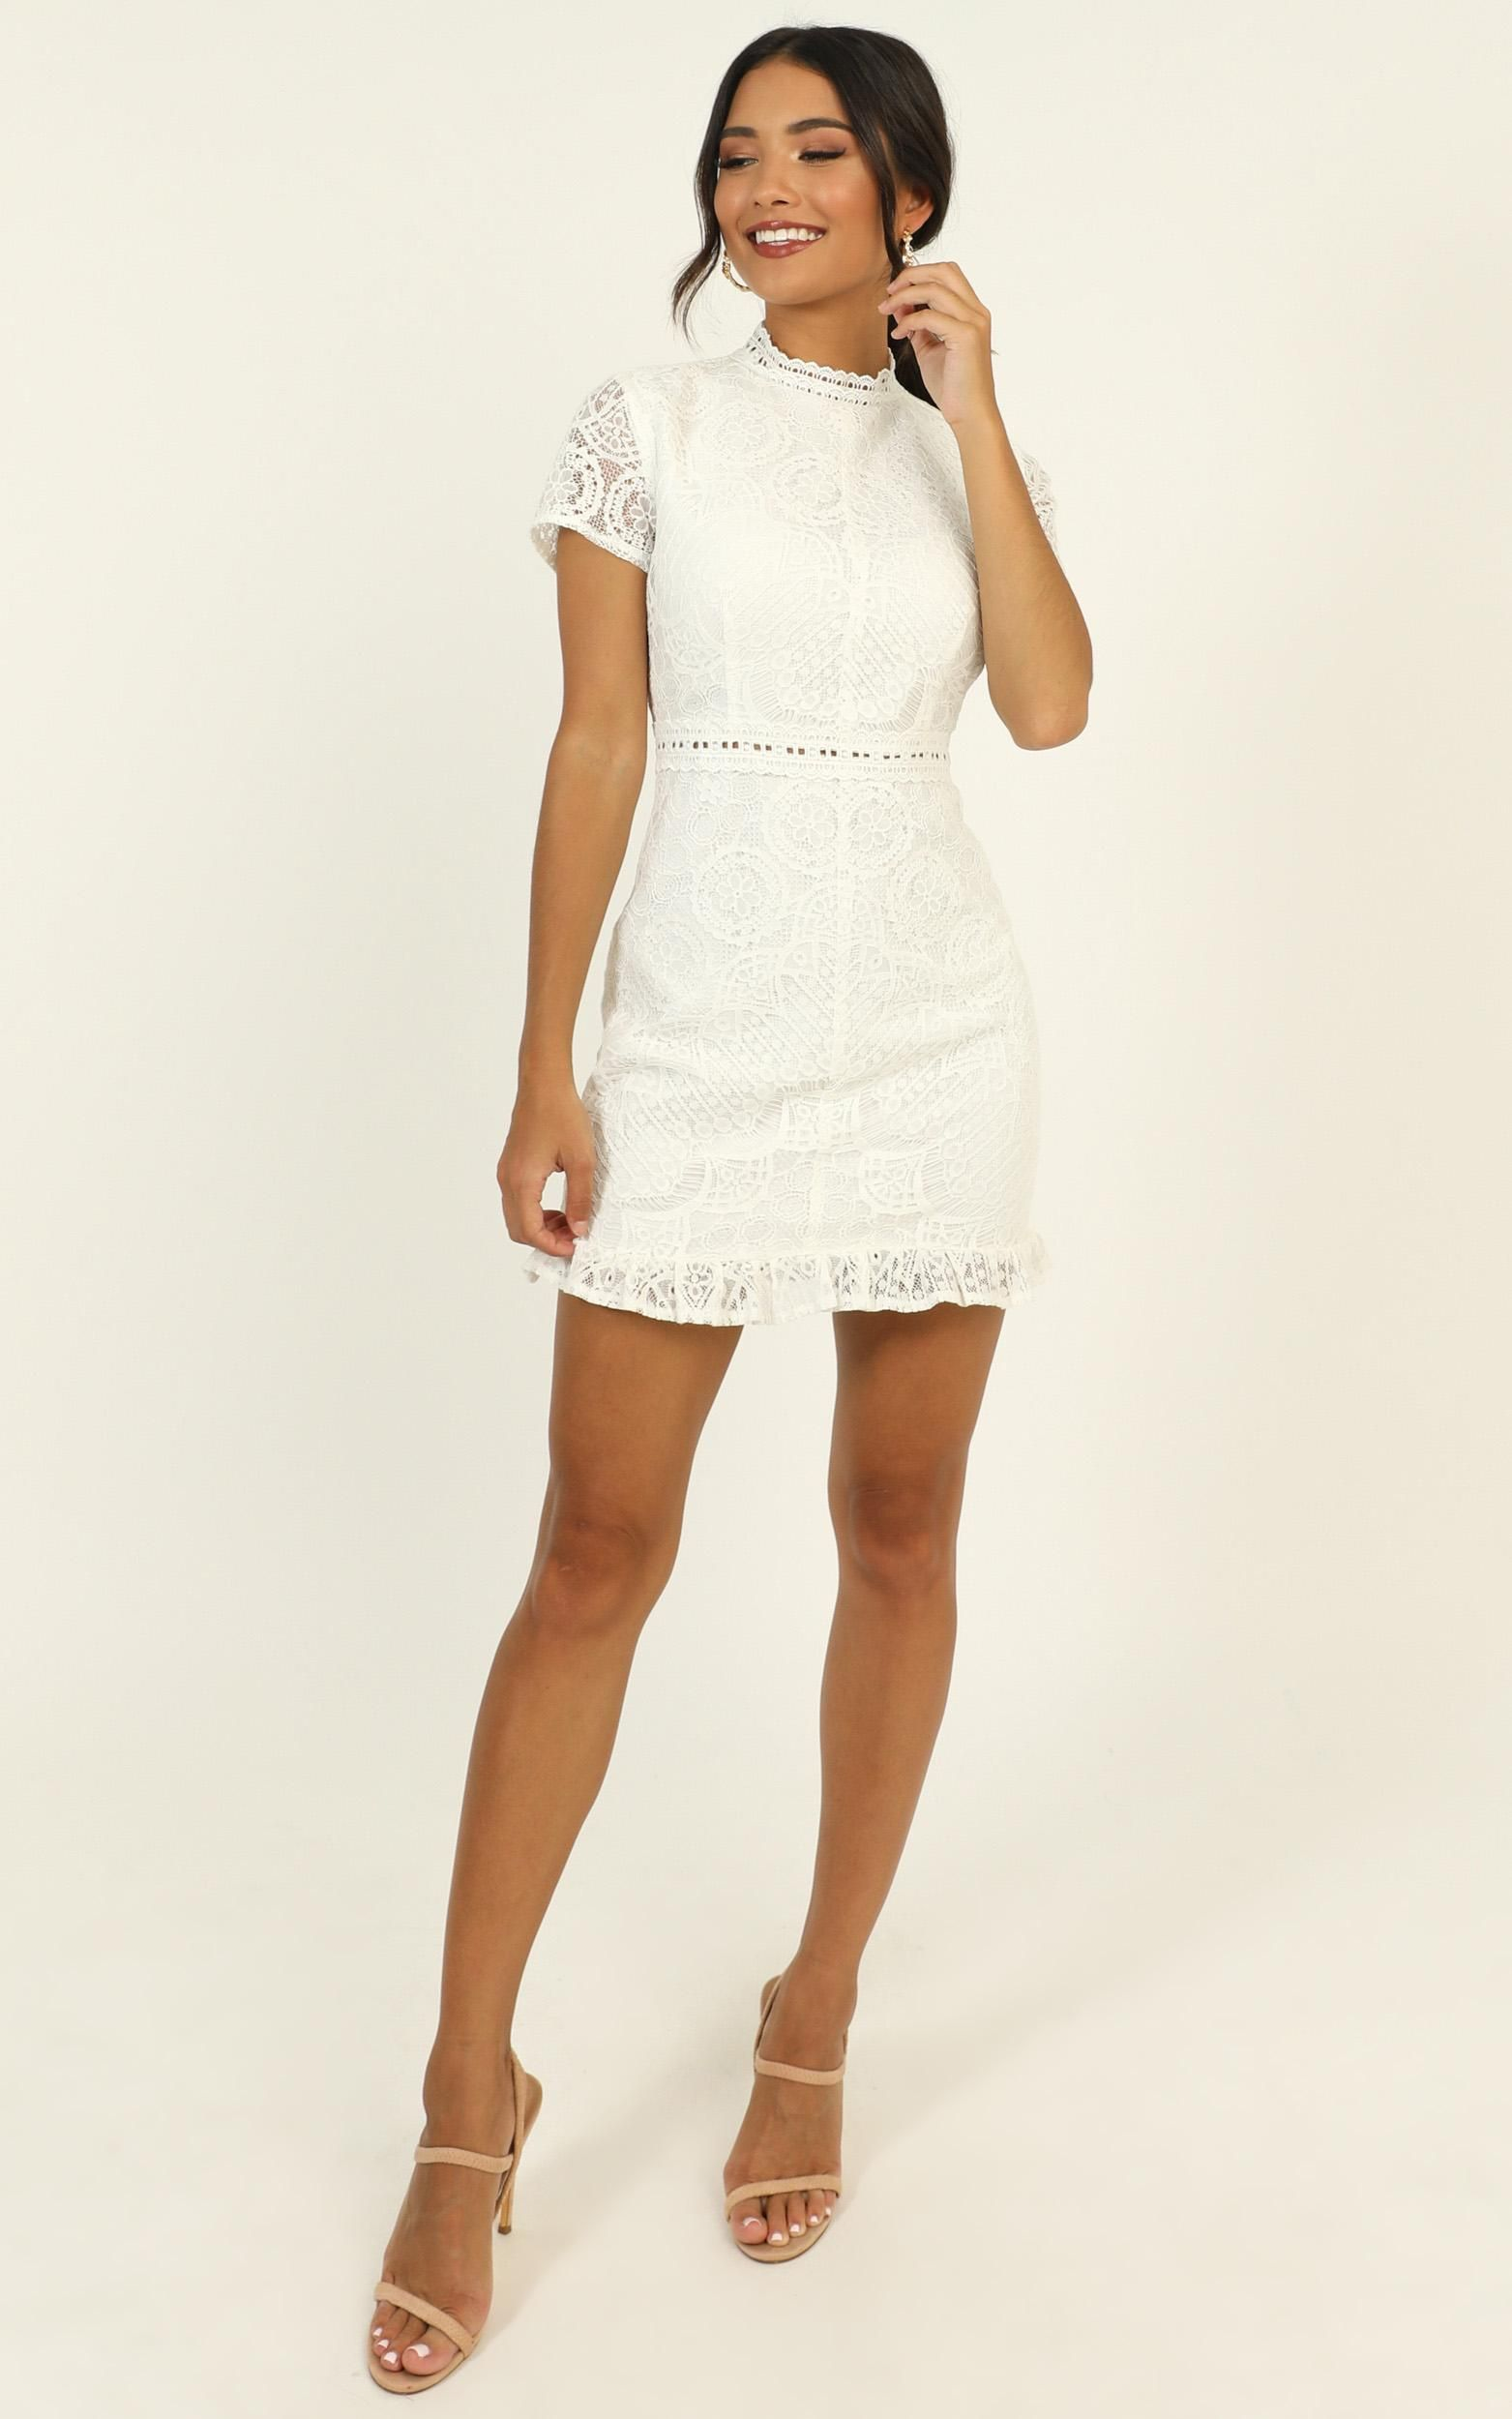 Everything Is Fabulous Dress In White Lace Showpo In 2020 White Short Dress White Dress Cute White Dress [ 2500 x 1563 Pixel ]